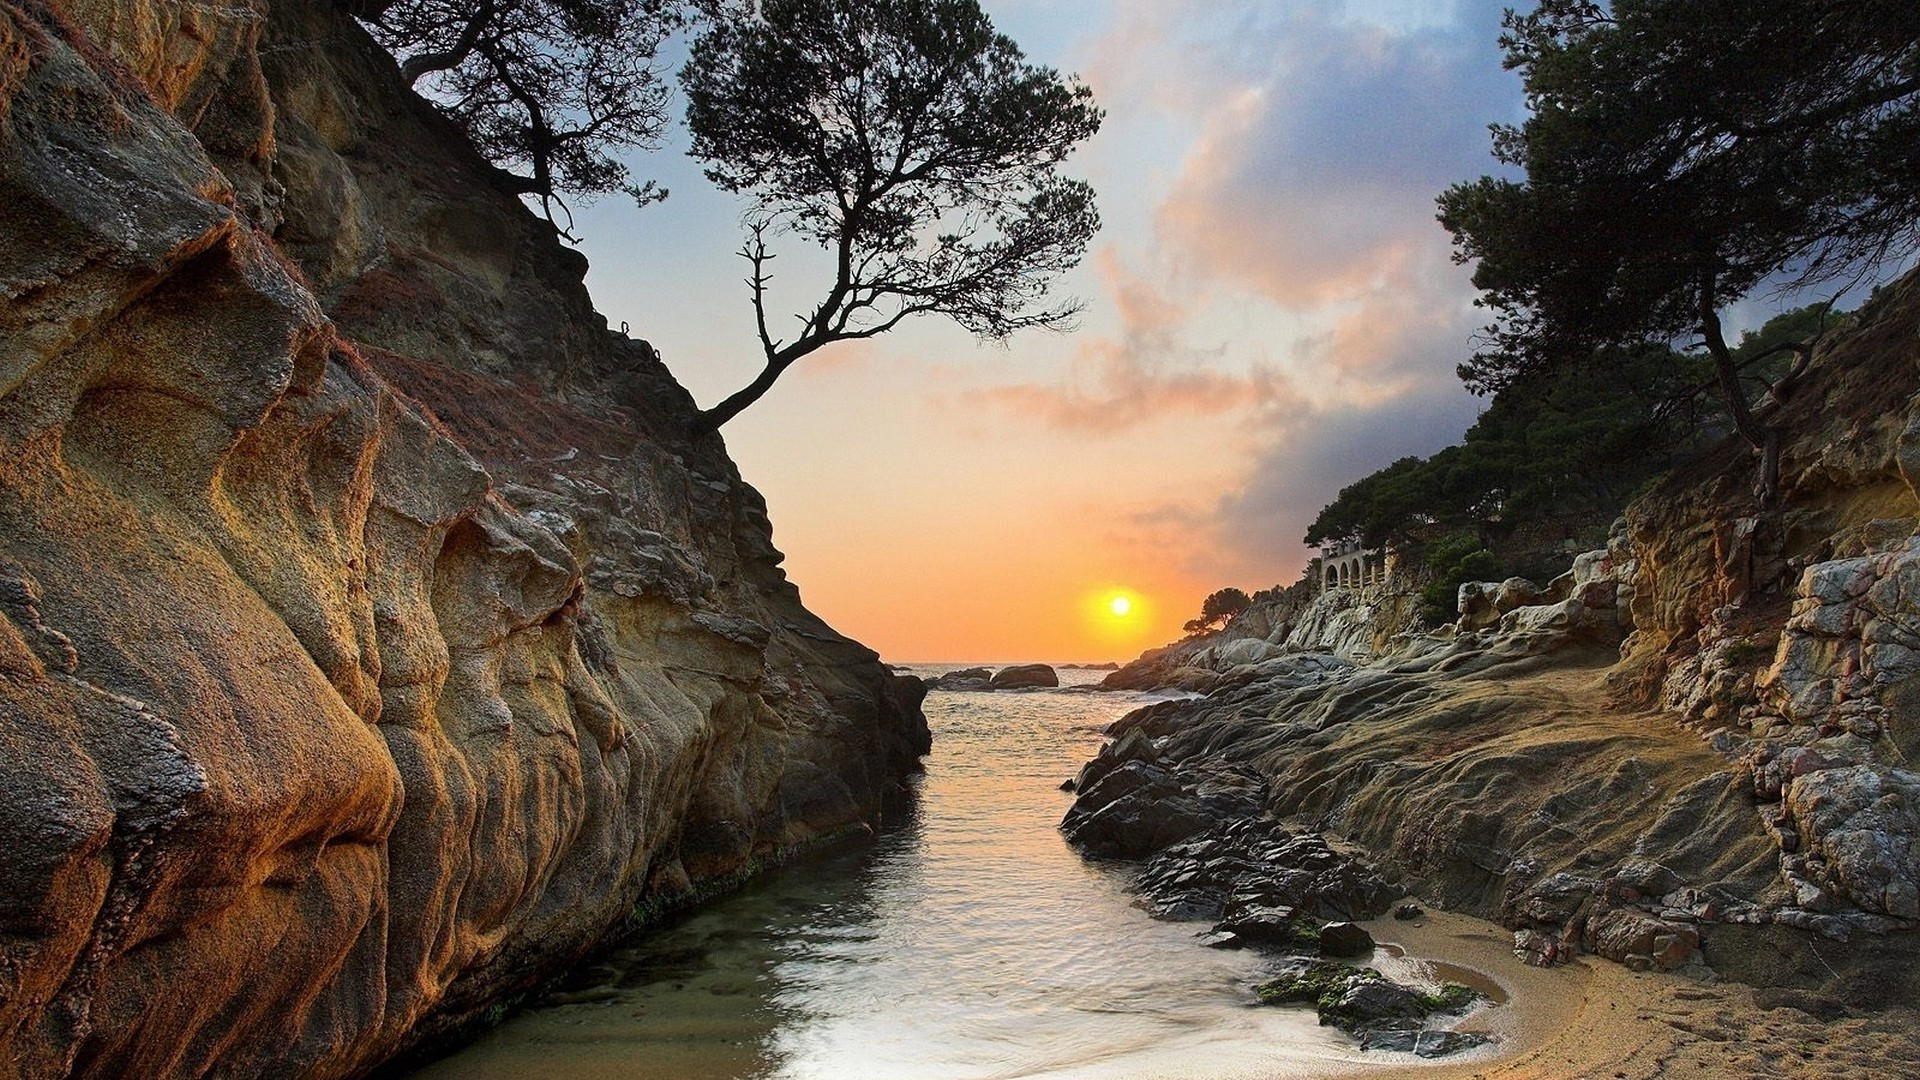 Sunset in Costa Brava, Spain